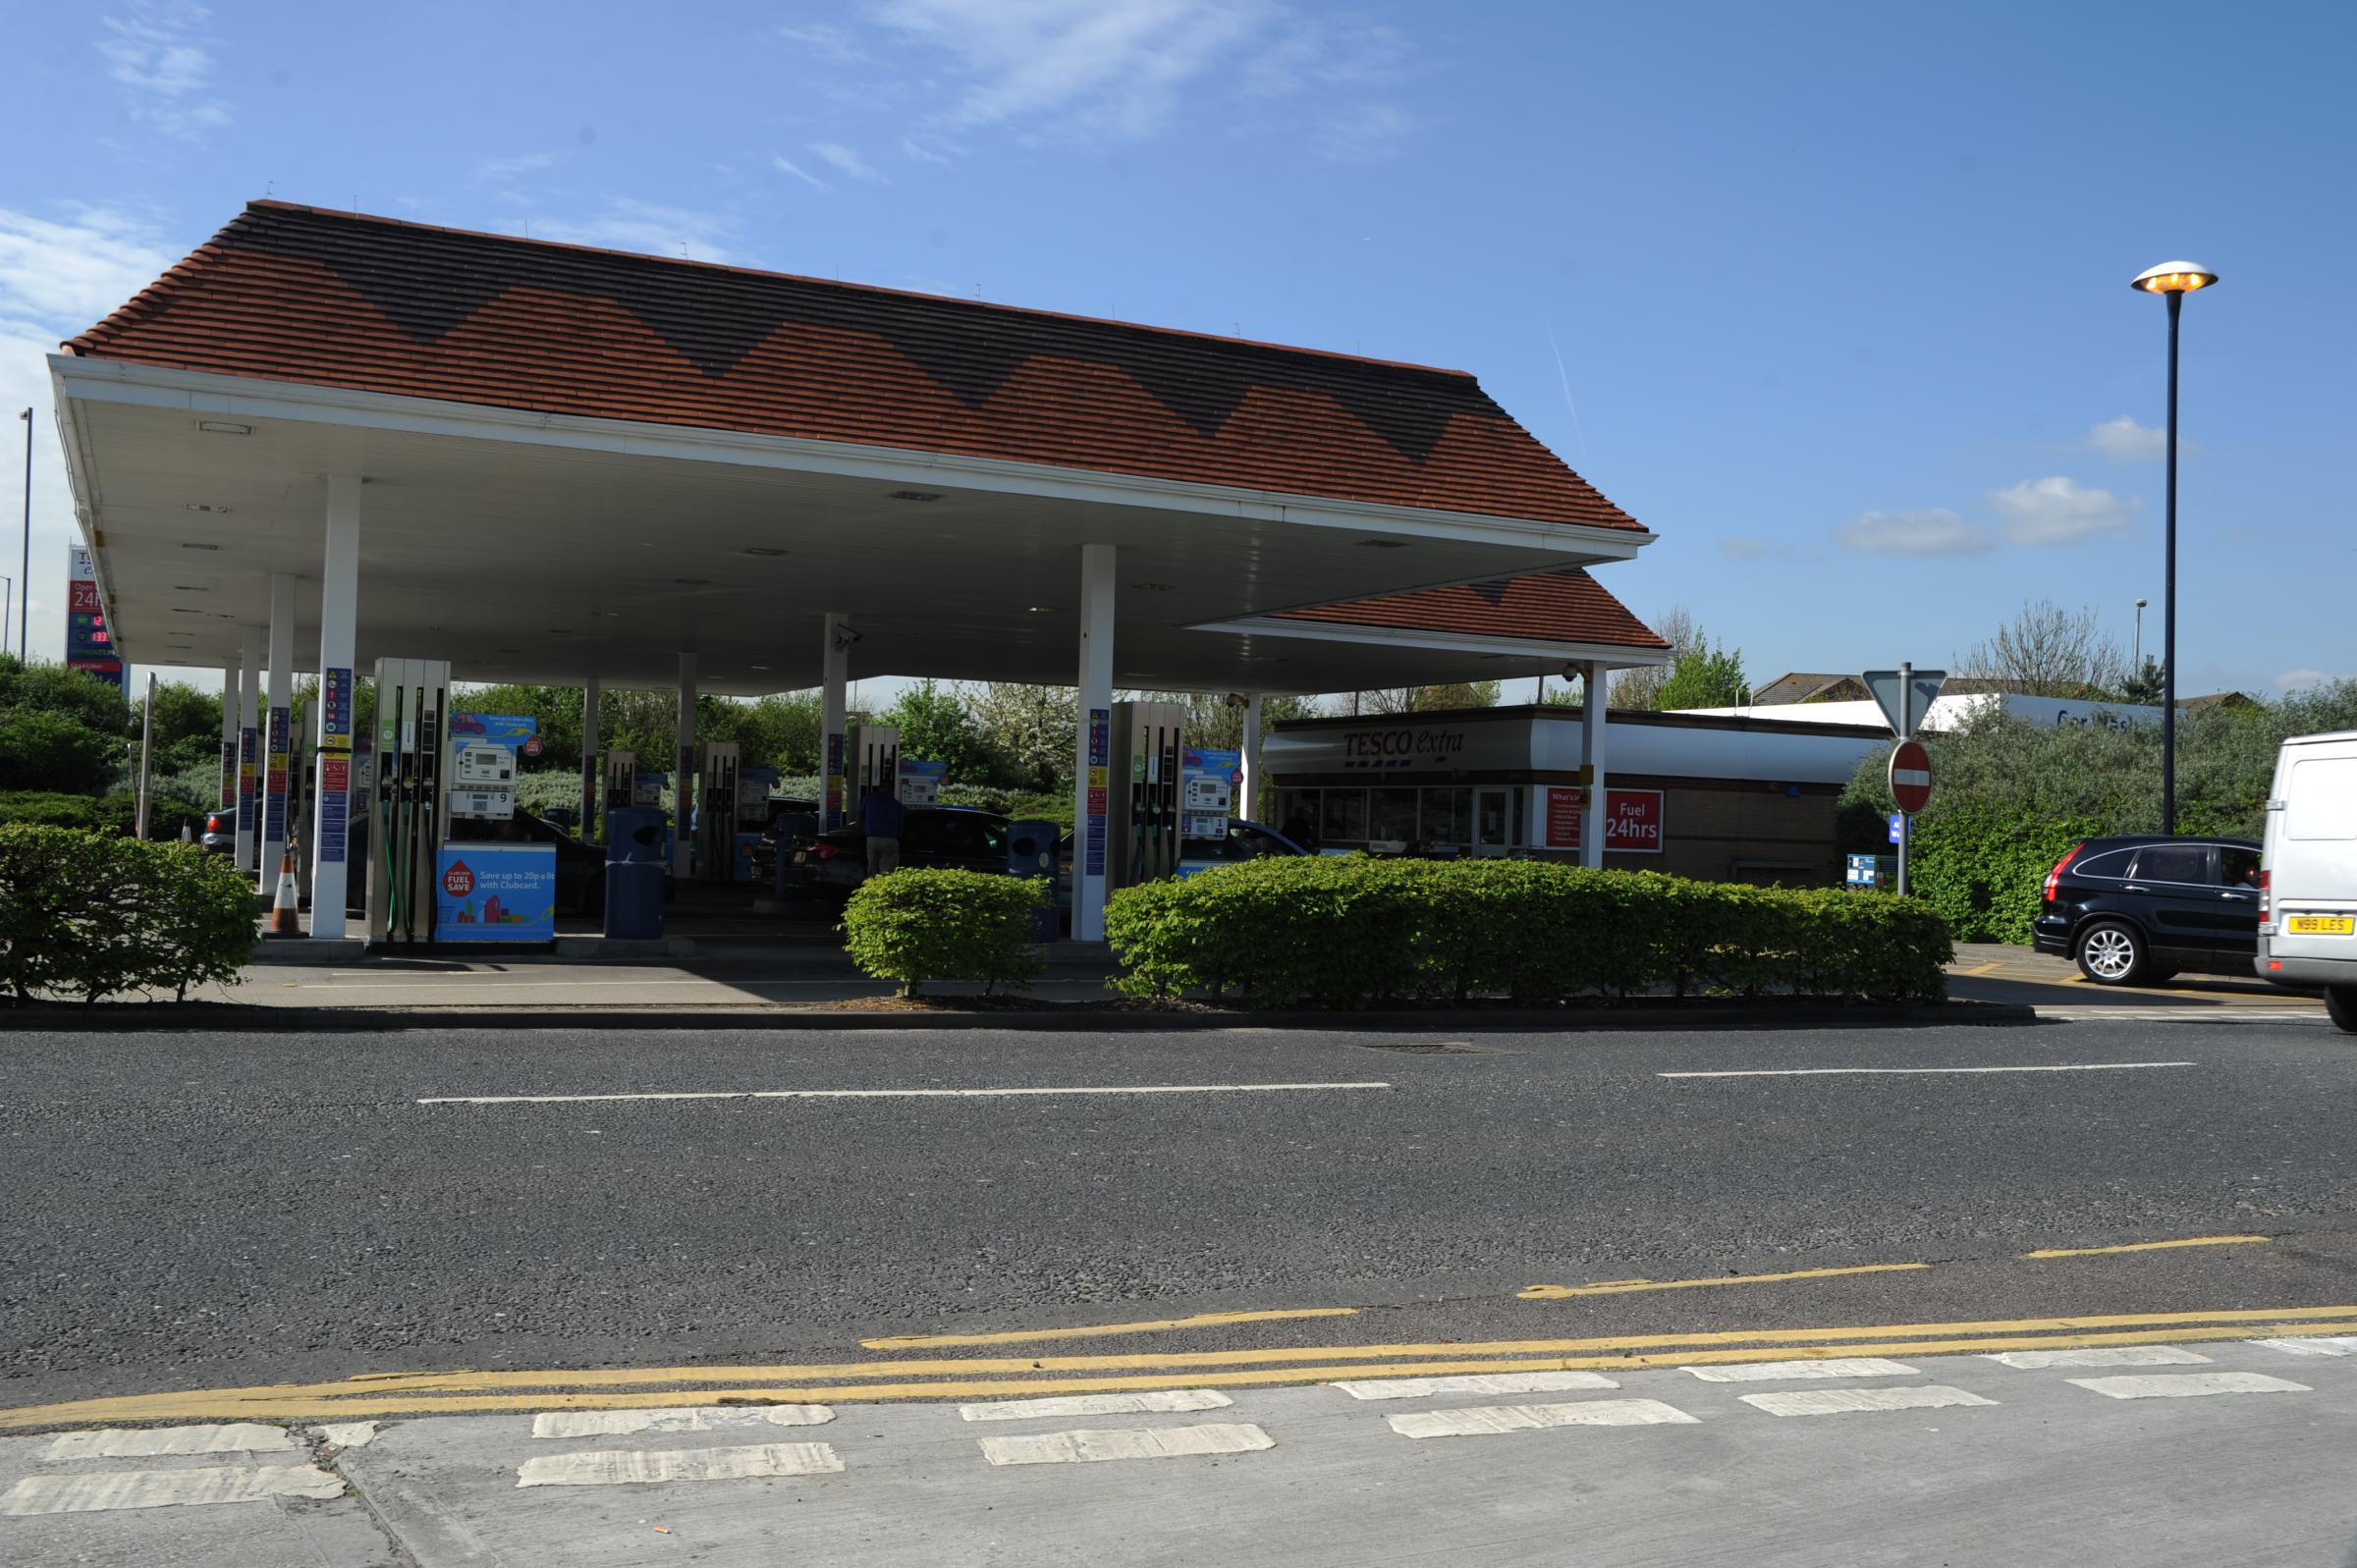 The petrol station